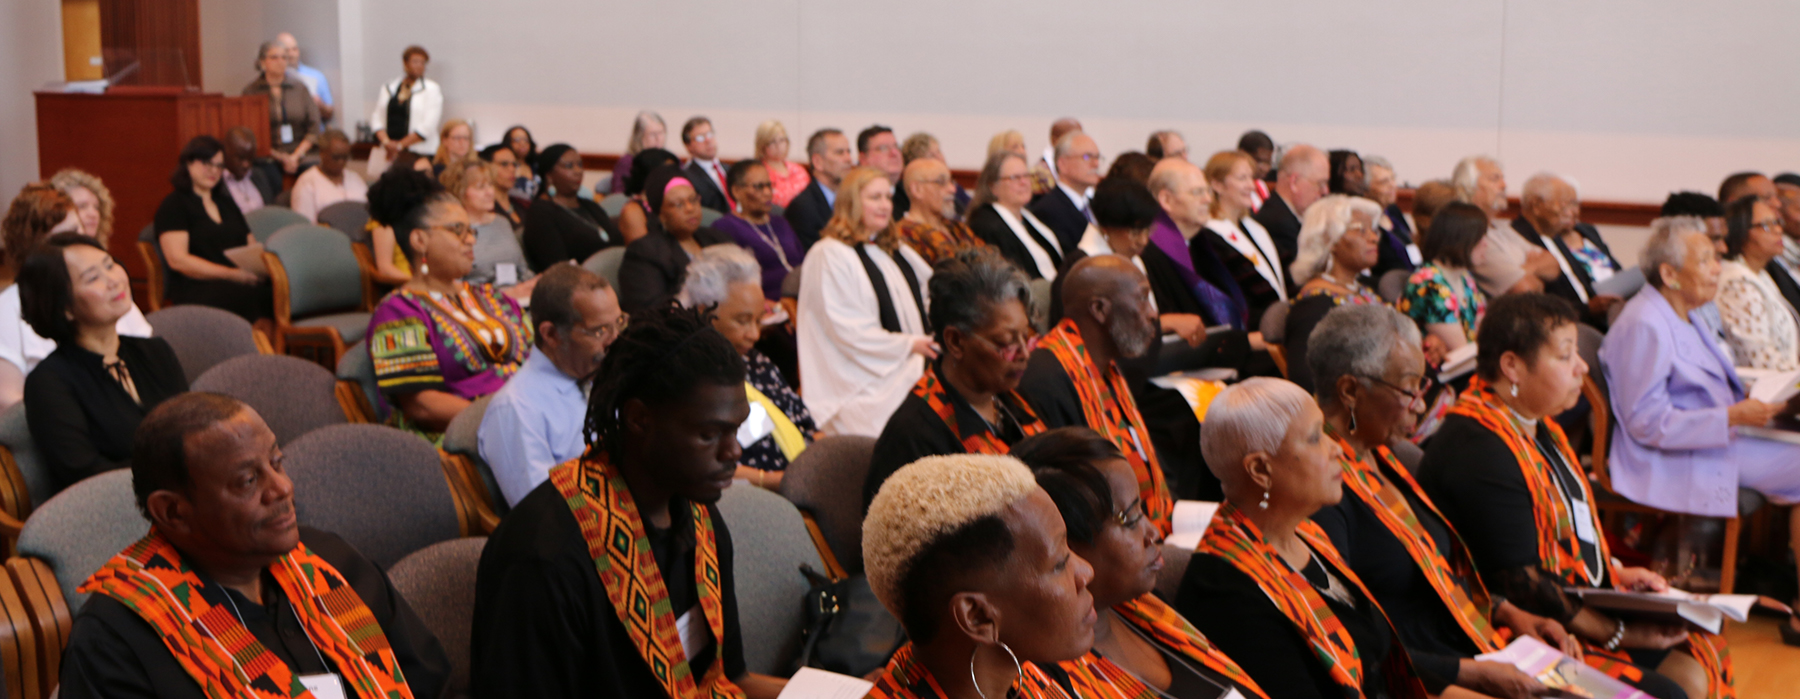 Image of guests attending memorial service celebrating the life of Rev. Robina Winbush. - Photo by Angie Stevens